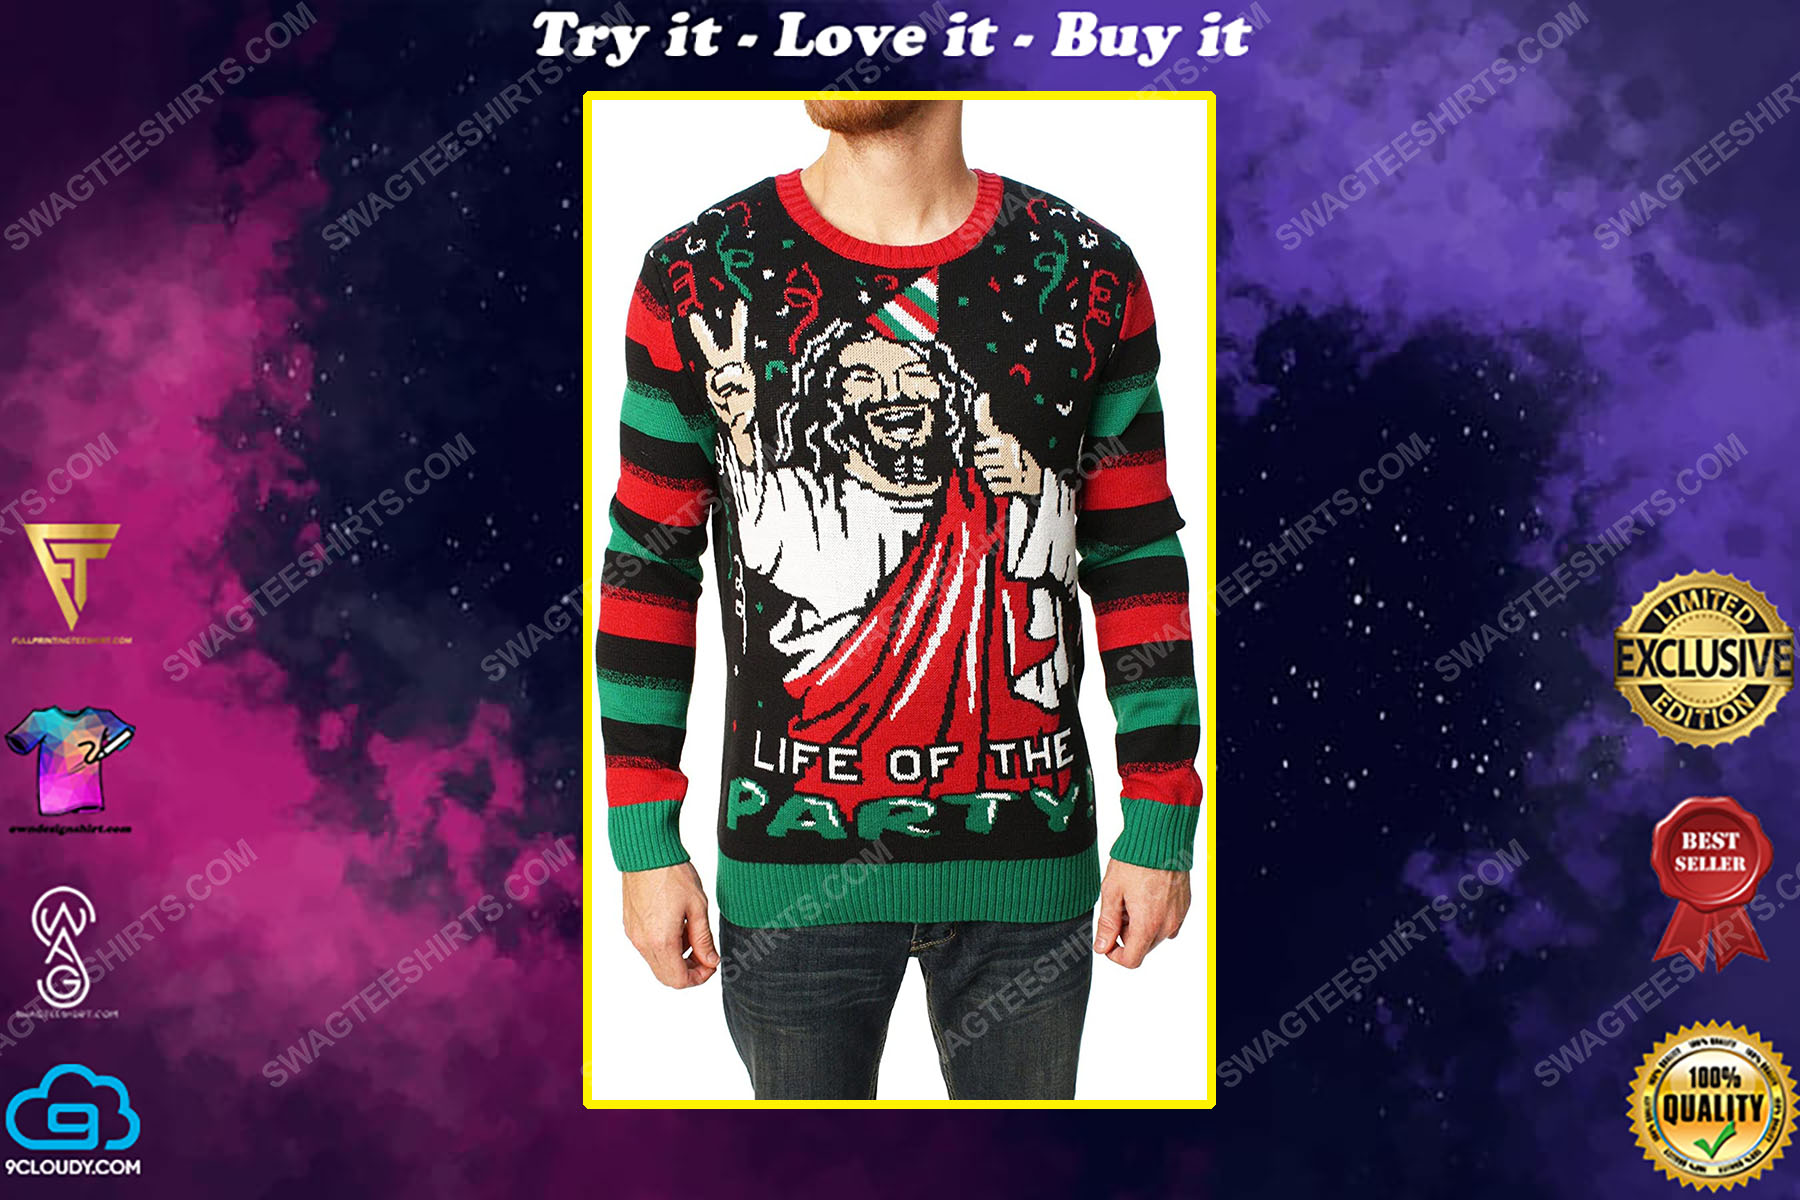 Life of the party full print ugly christmas sweater